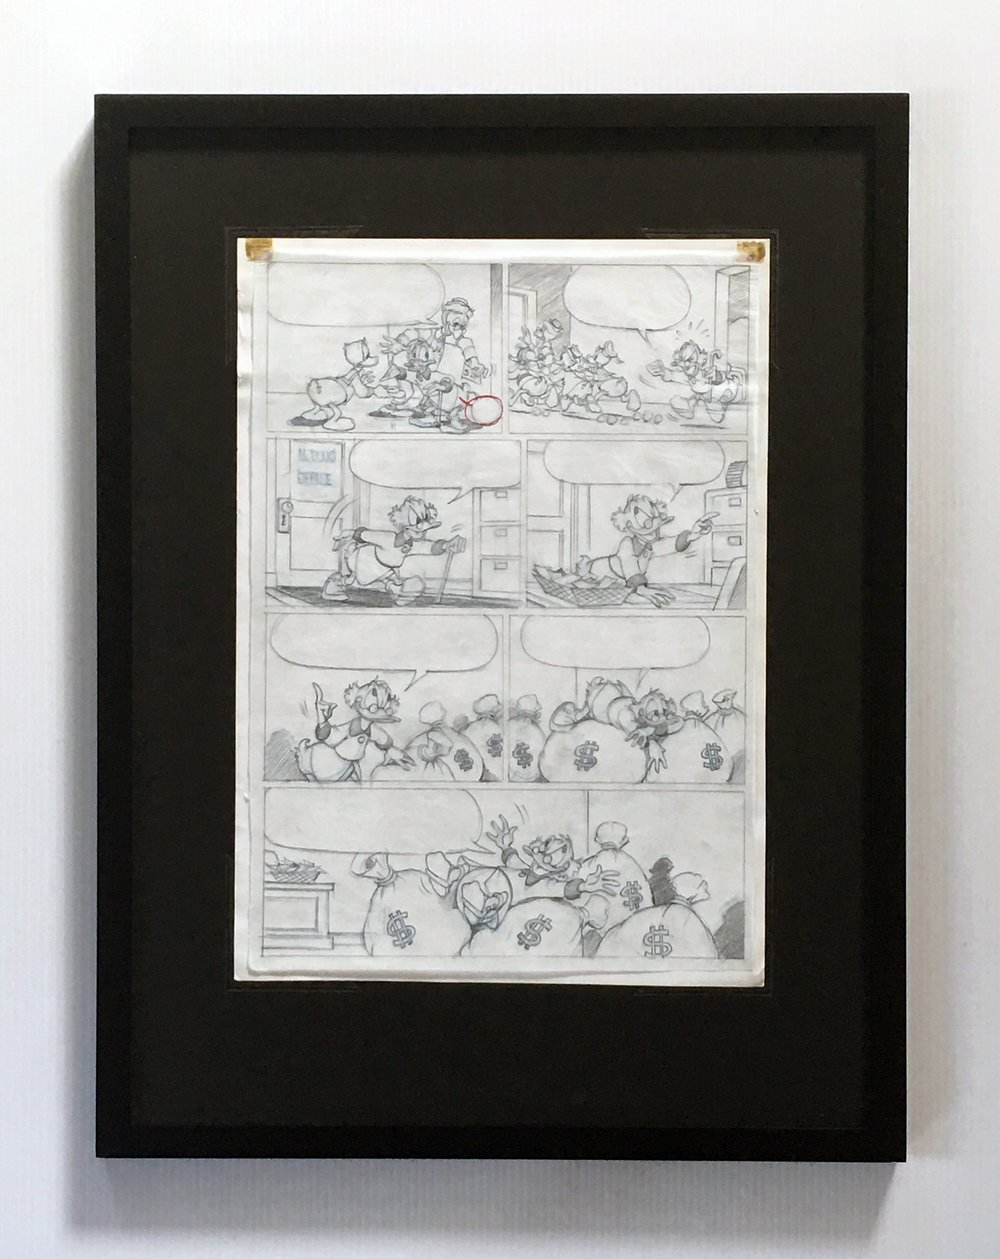 Penciled Layer Displayed on Reverse Side of Inked Layer - (Framing Materials Sold Separately)